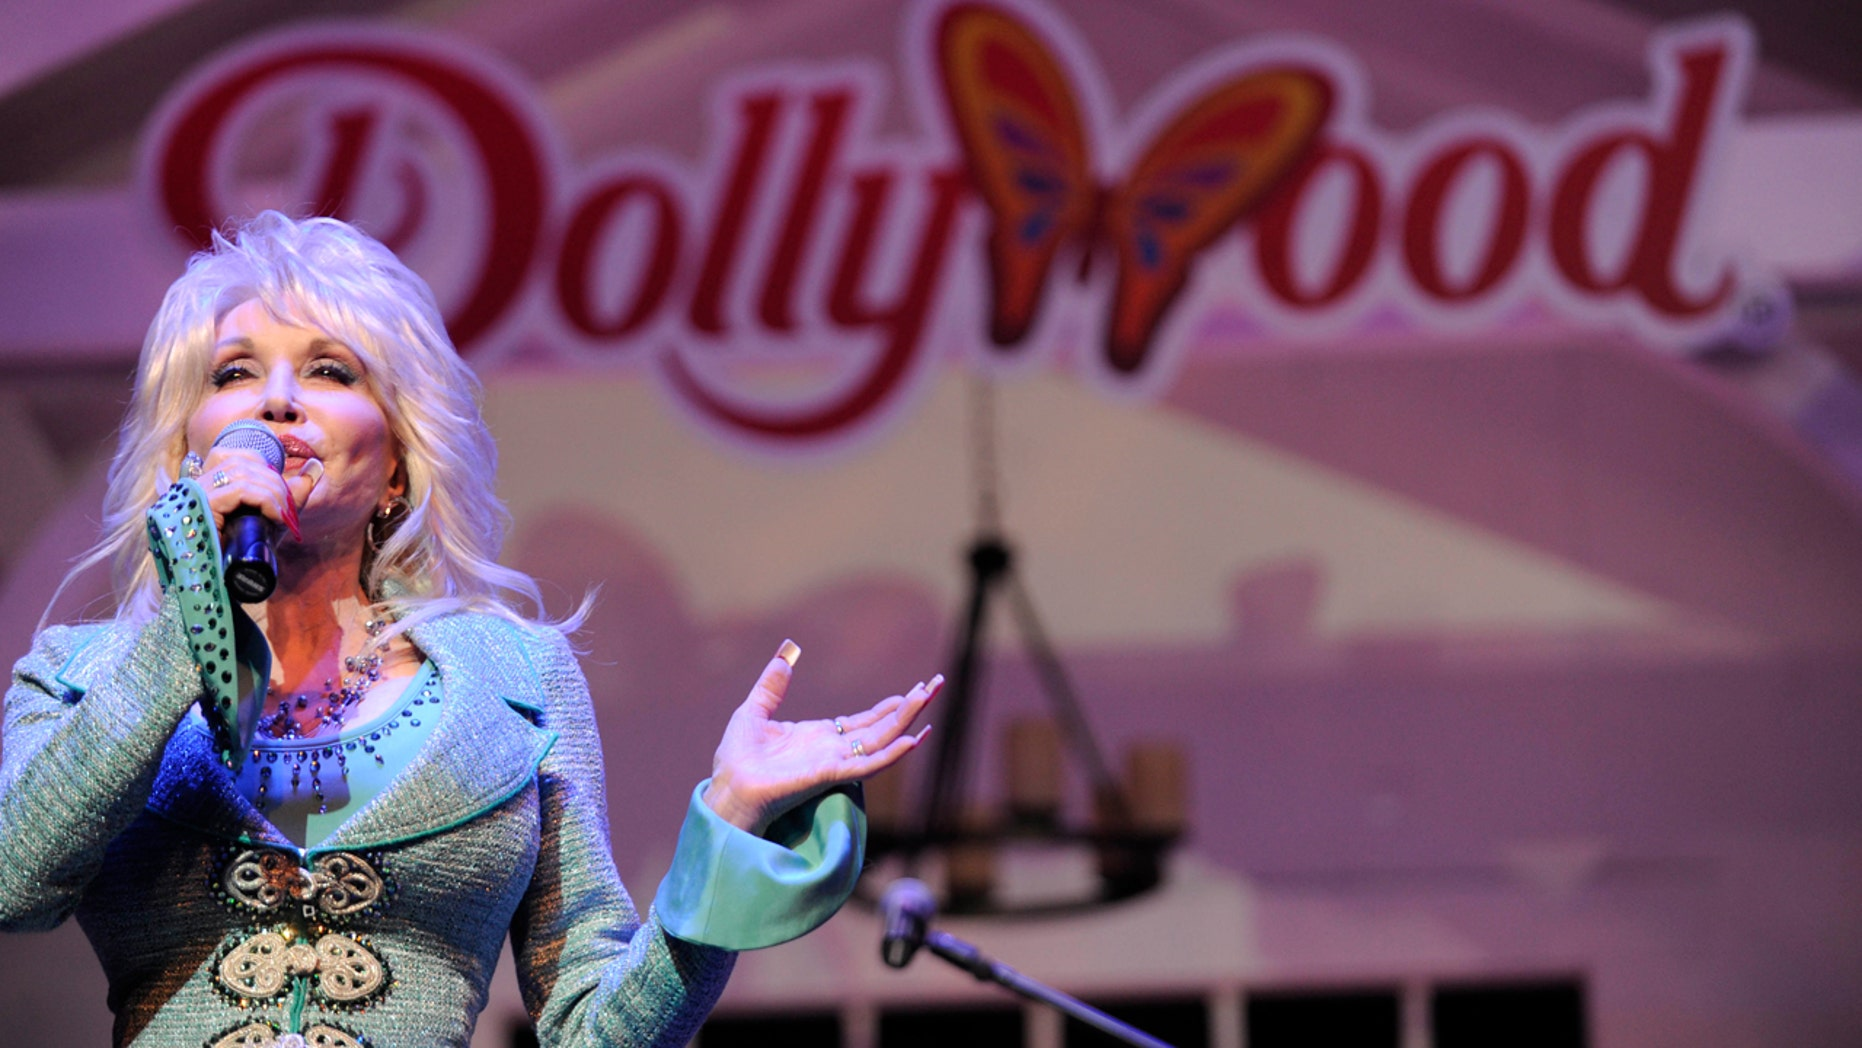 Dolly Parton announces $37M Dollywood expansion for 2019